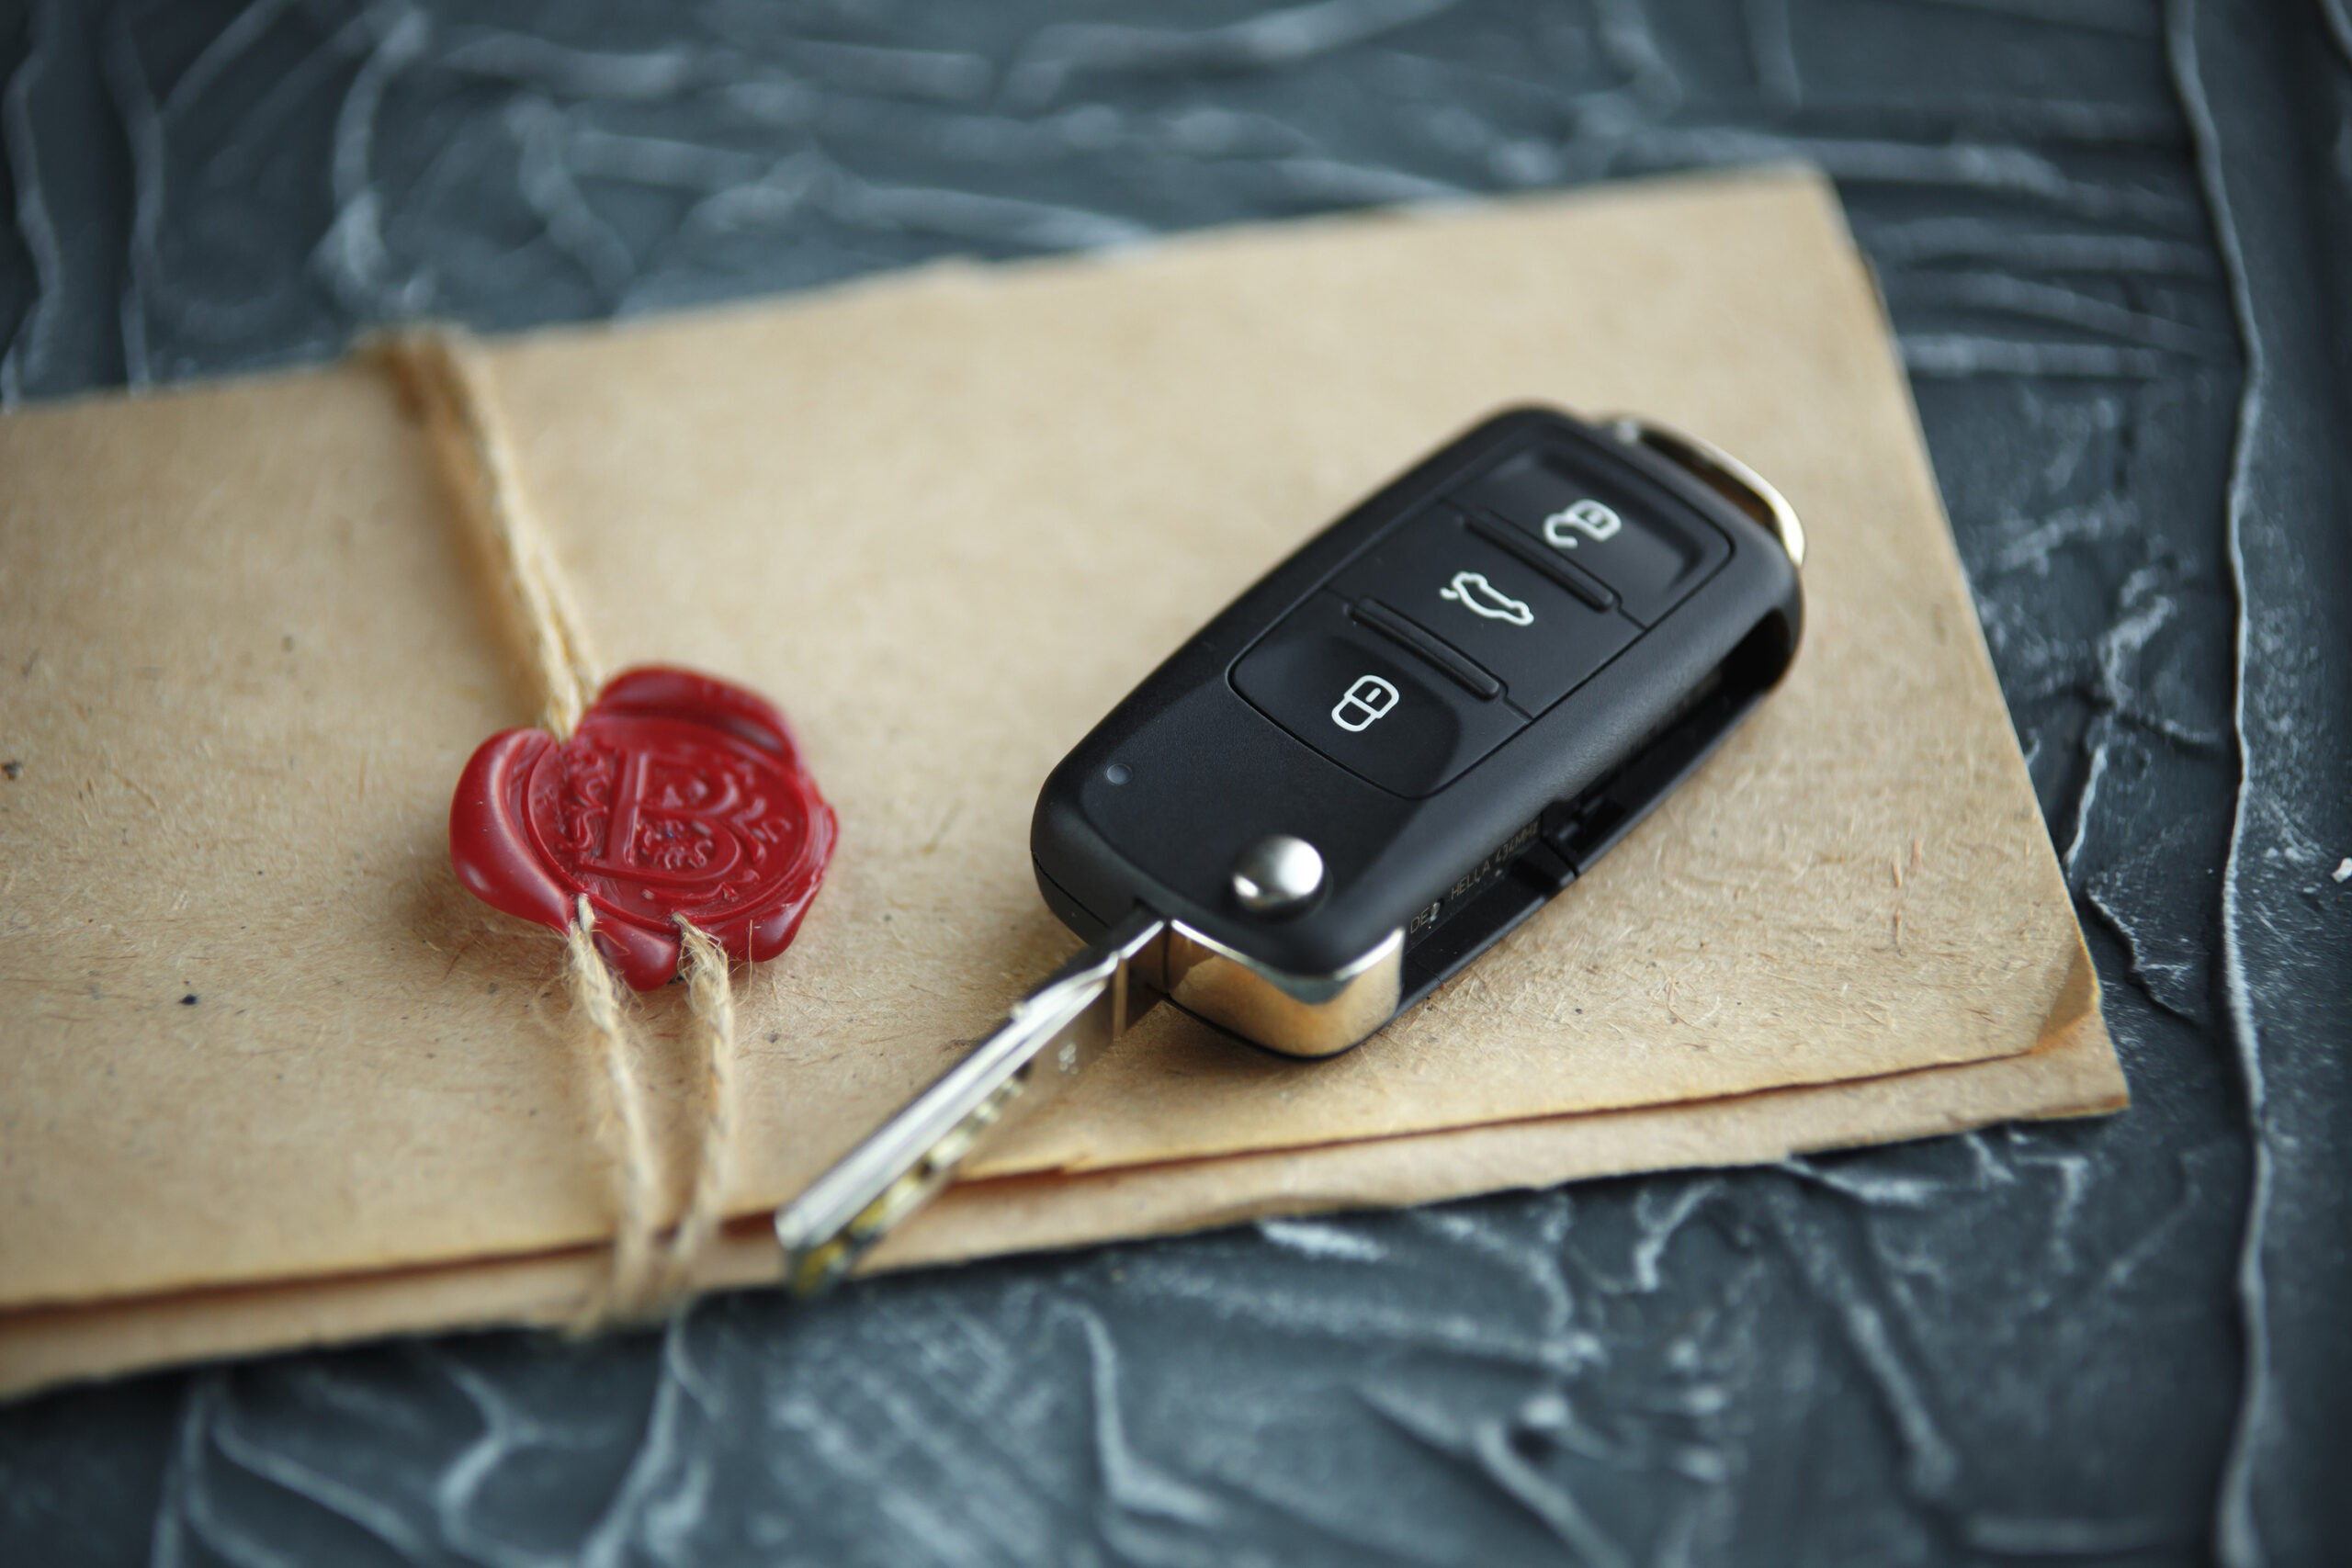 Is Selling Your Car Privately Worth The Risk? – Here's What You Need To Know